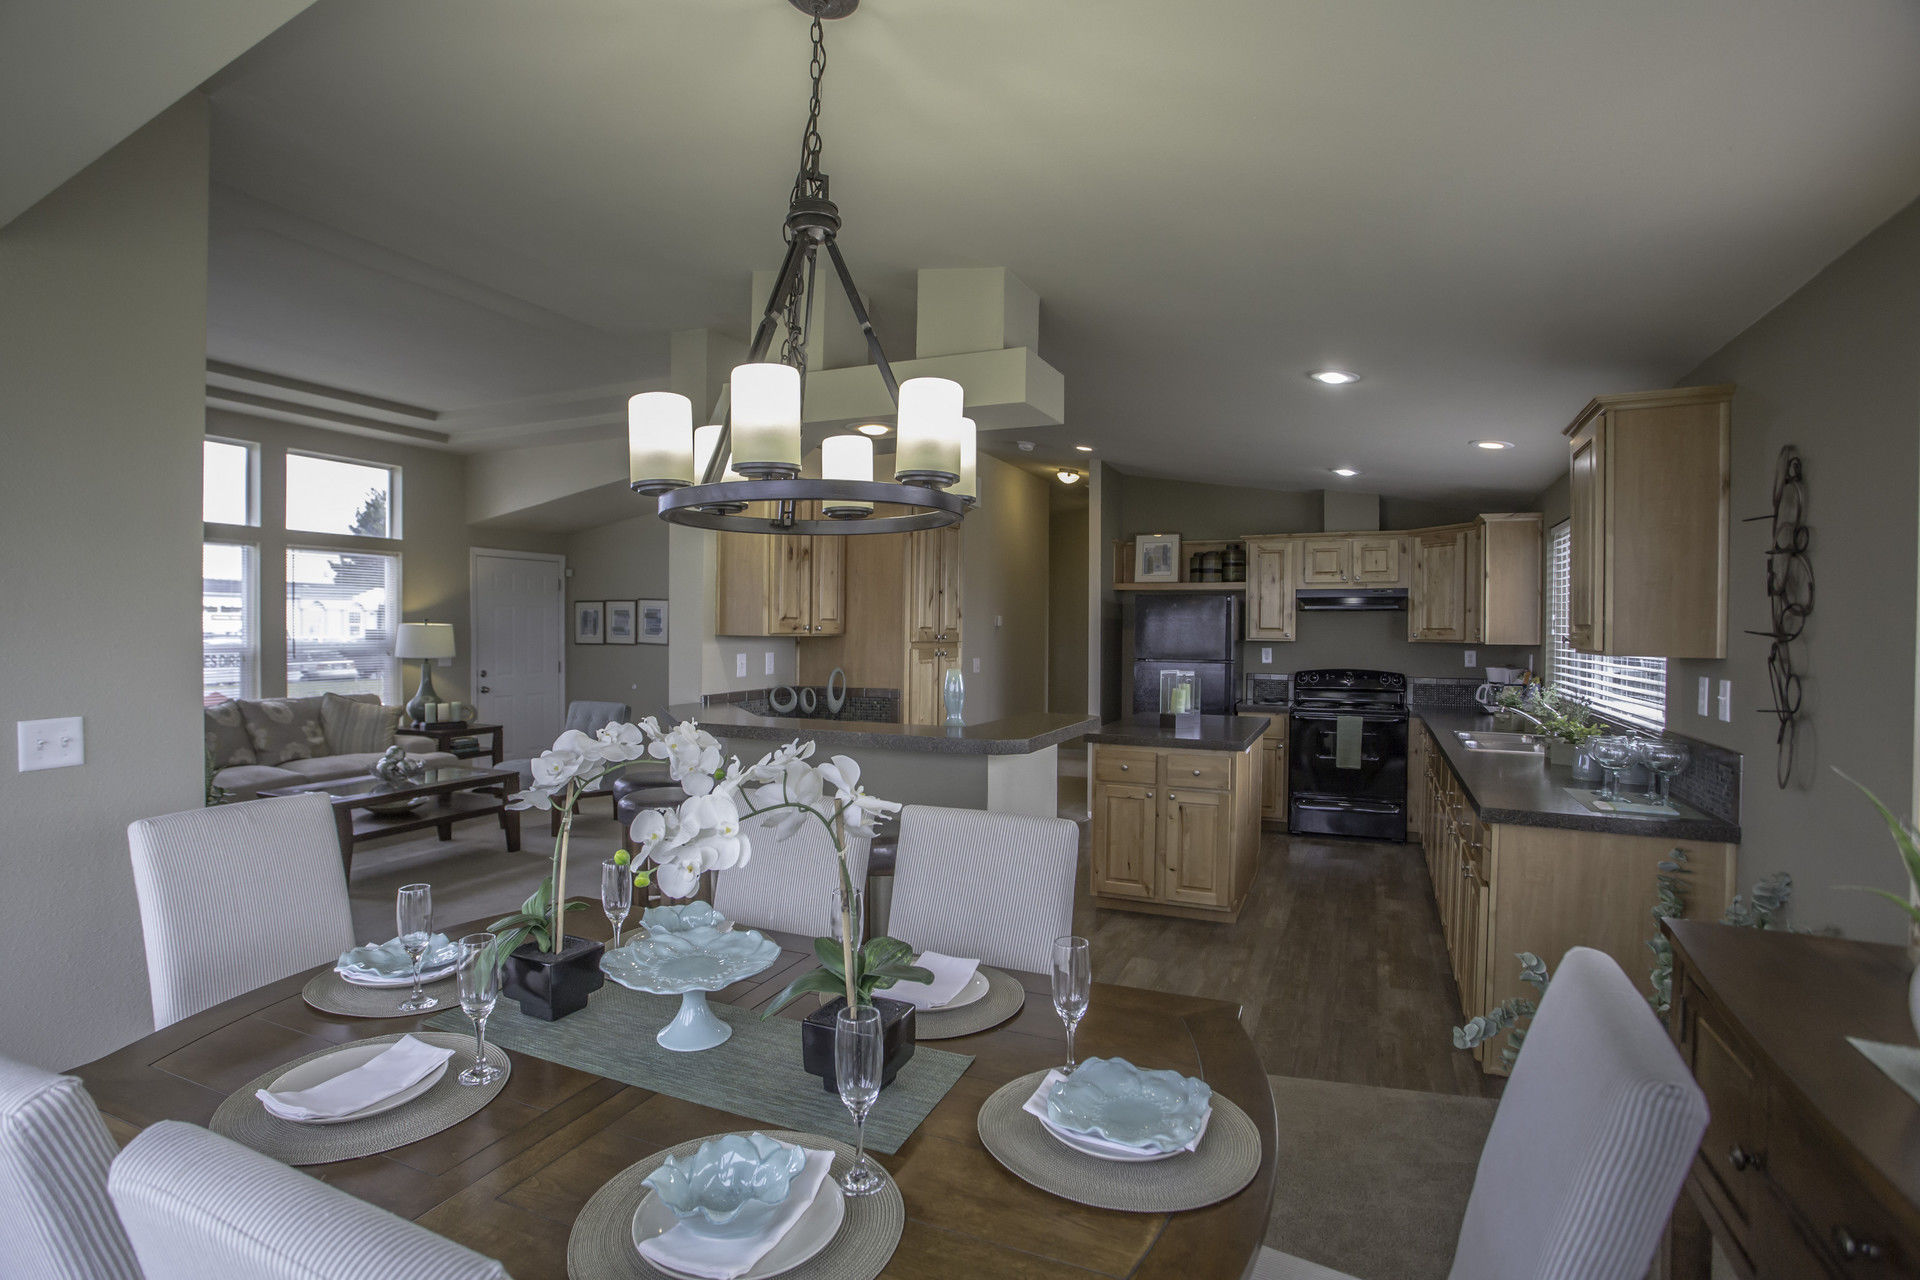 The sunset bay 3 bed 2 bath 1500 sqft affordable home - How long do modular homes last ...